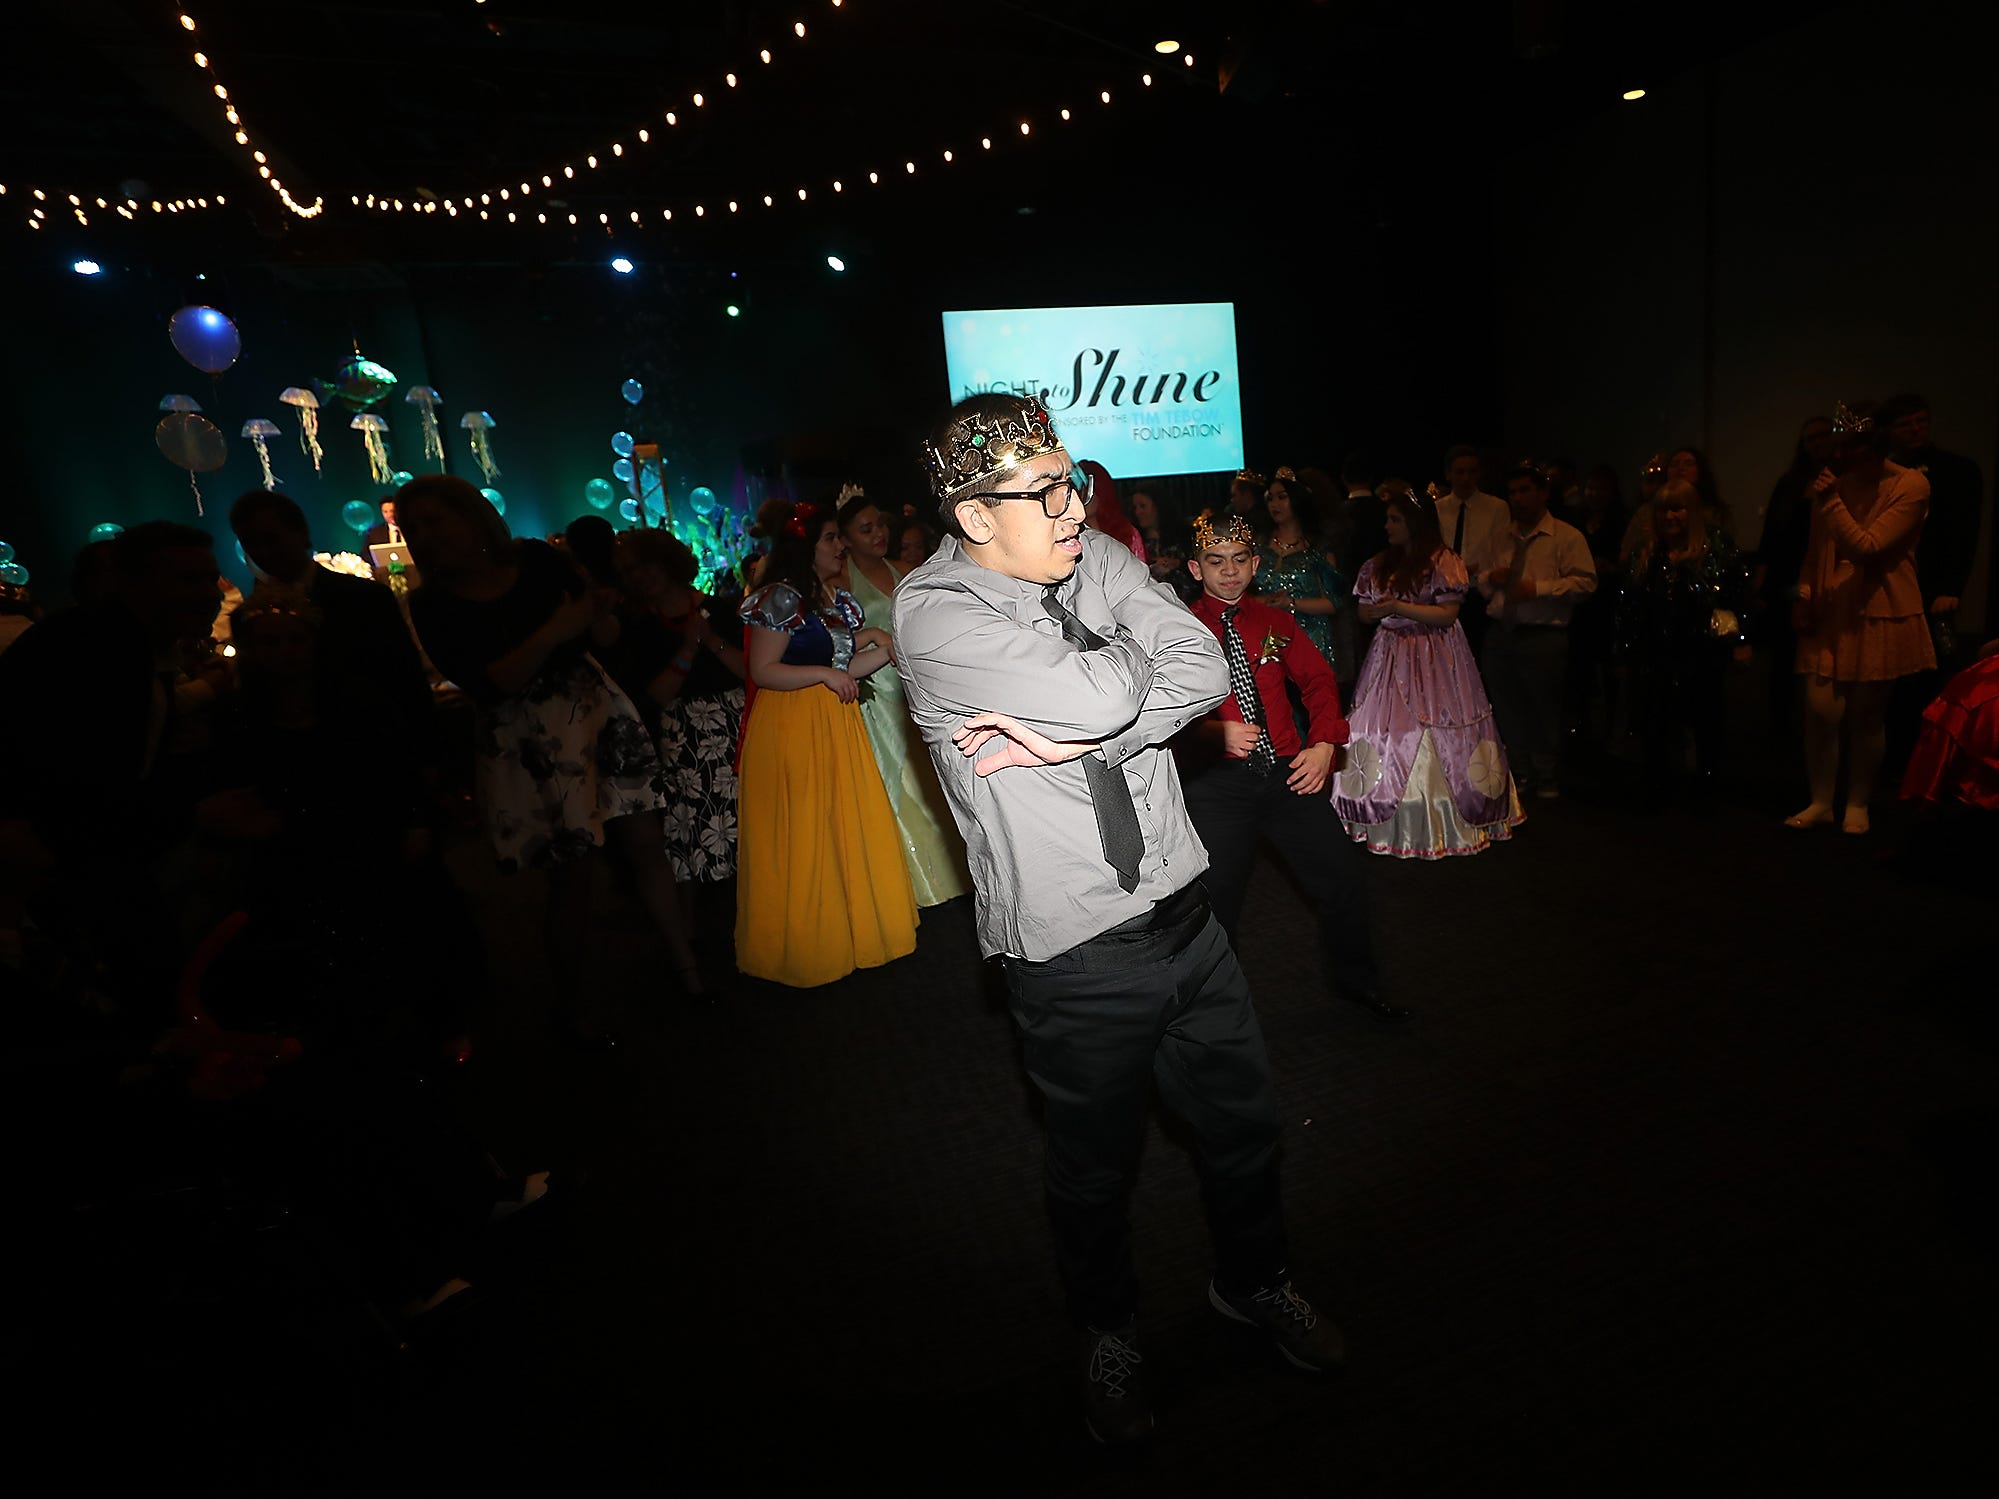 Charlie Yang dances in the circle during the Night To Shine at the newlife Training & Events Center in Silverdale on Friday, March 8, 2019.